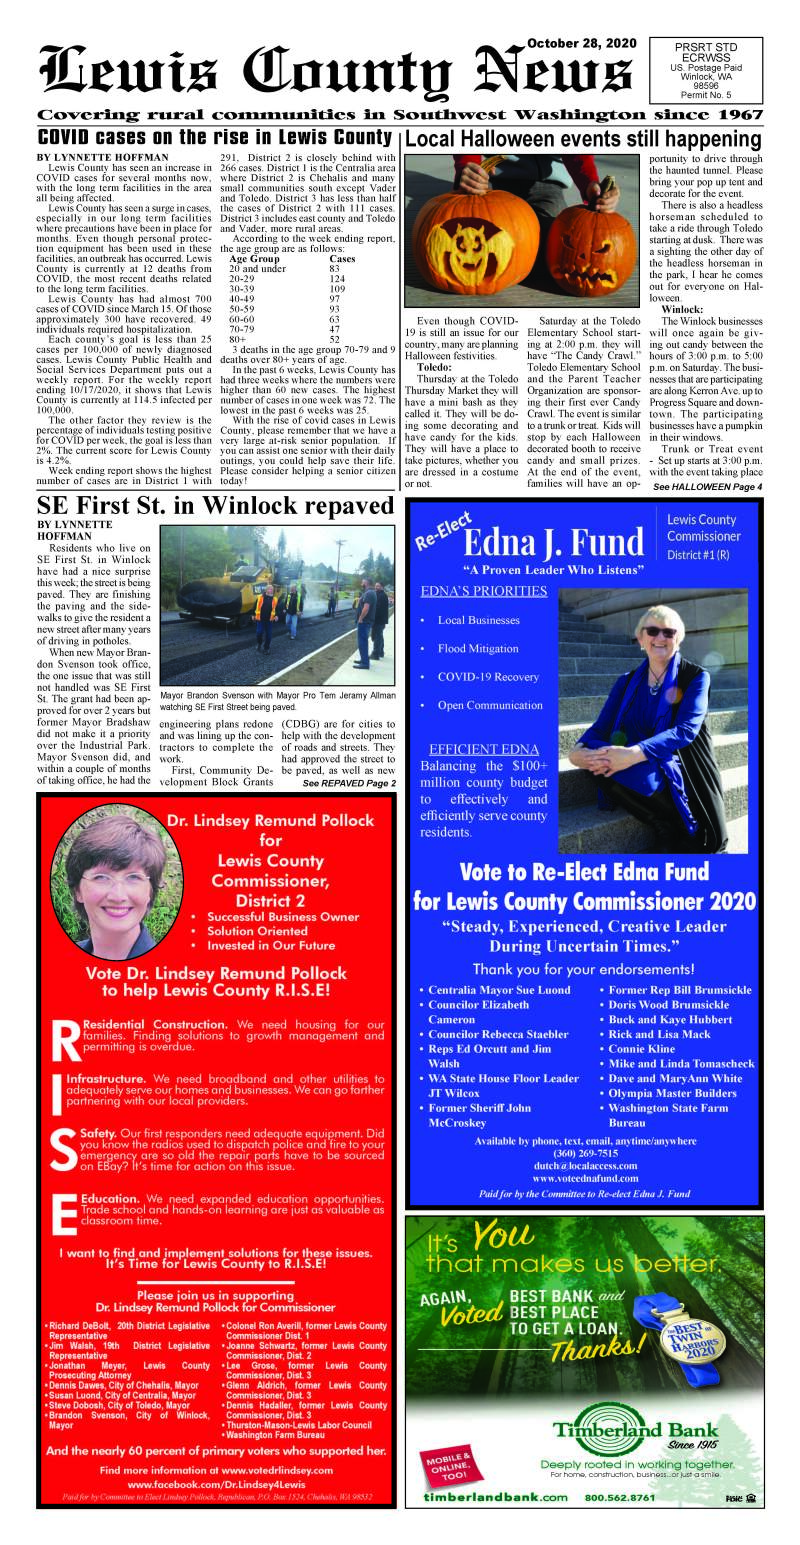 October 28, 2020 Lewis County News